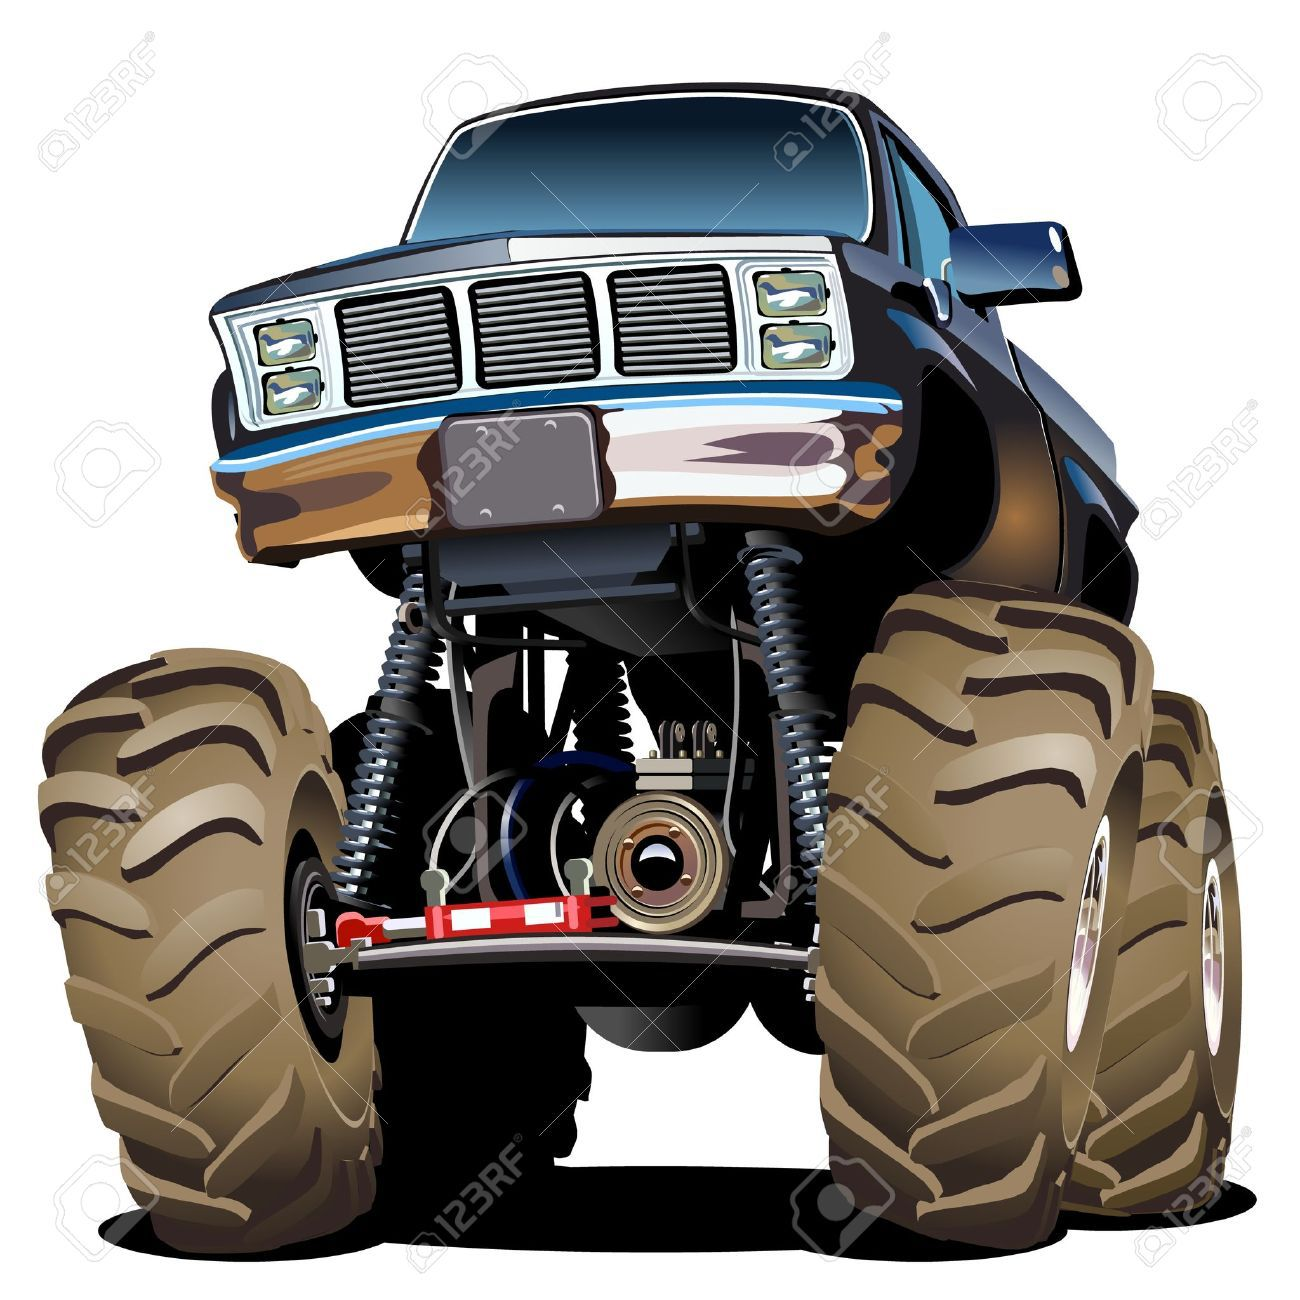 Mud Truck Clipart Monster Trucks Cartoon Monsters Mud Trucks